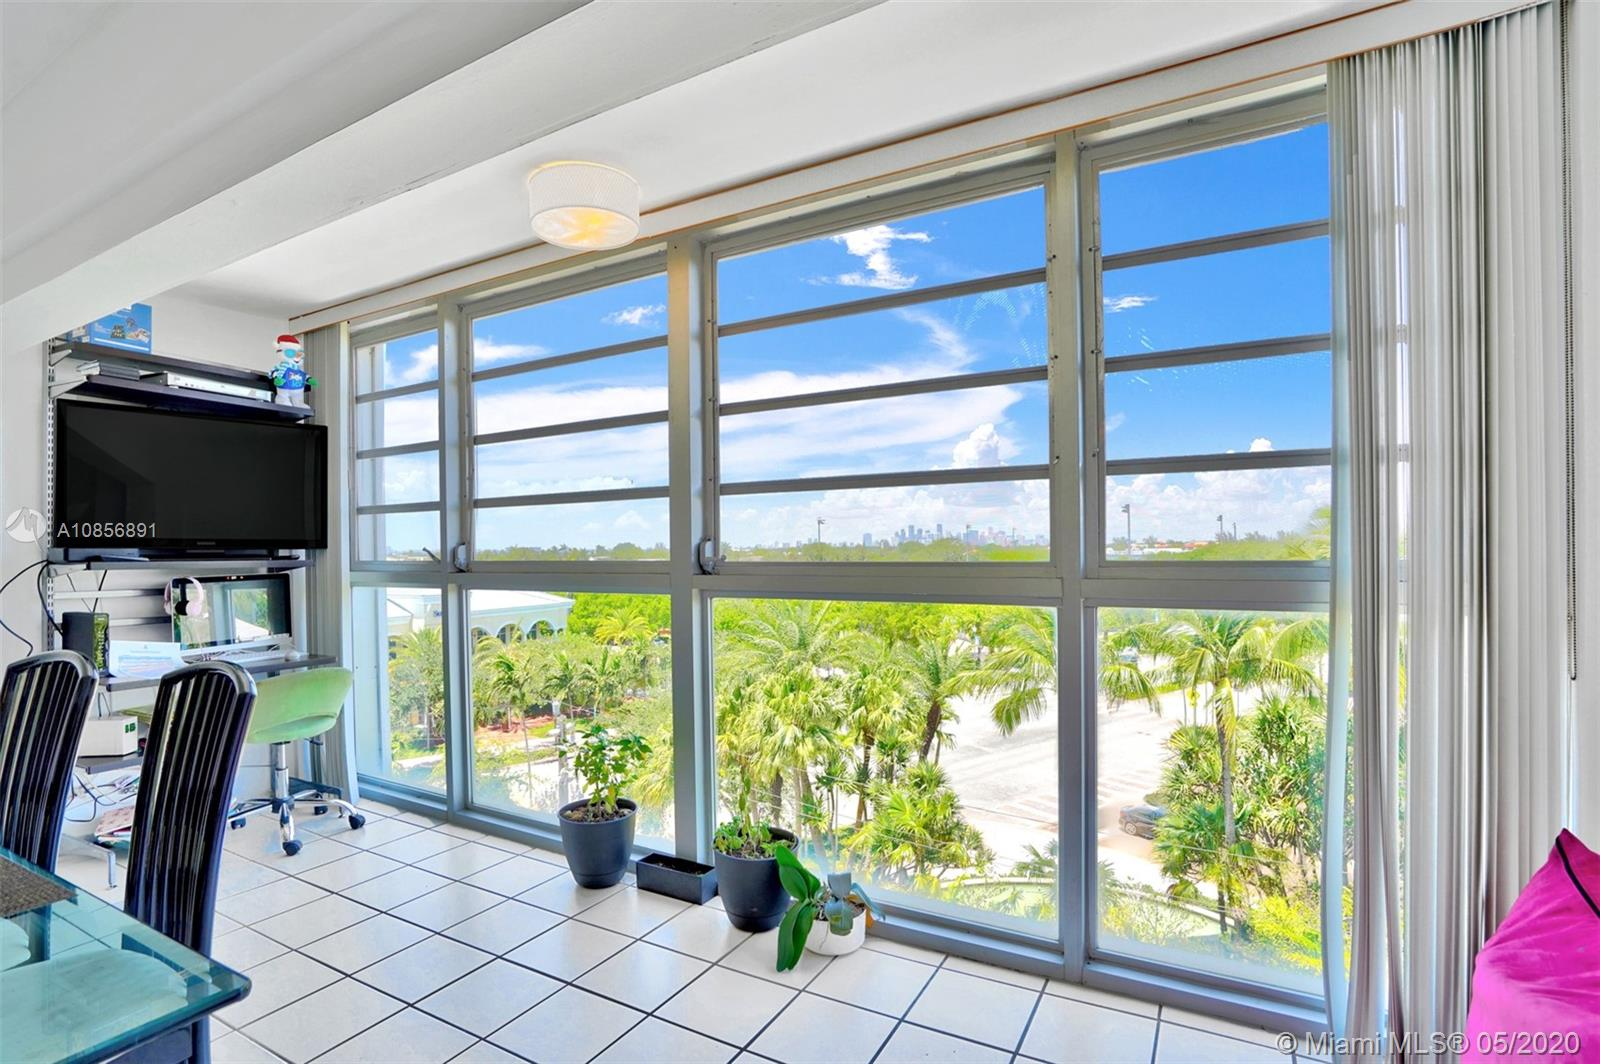 Floor to ceiling windows with views of picturesque island Village Green greet you upon entering this lovely 2 bedroom 2 bath condo just steps from the white sandy beach of Key Biscayne. Residents benefit from closely located elementary school, shops, restaurants, community center, gym, playground and park. The Miami skyline can be seen from the living room at night and the sunrise can be seen from bedroom windows. One assigned parking.. Lobby recently updated. This property is move in ready and is a great opportunity to own in Miami's most sought after tropical oasis.